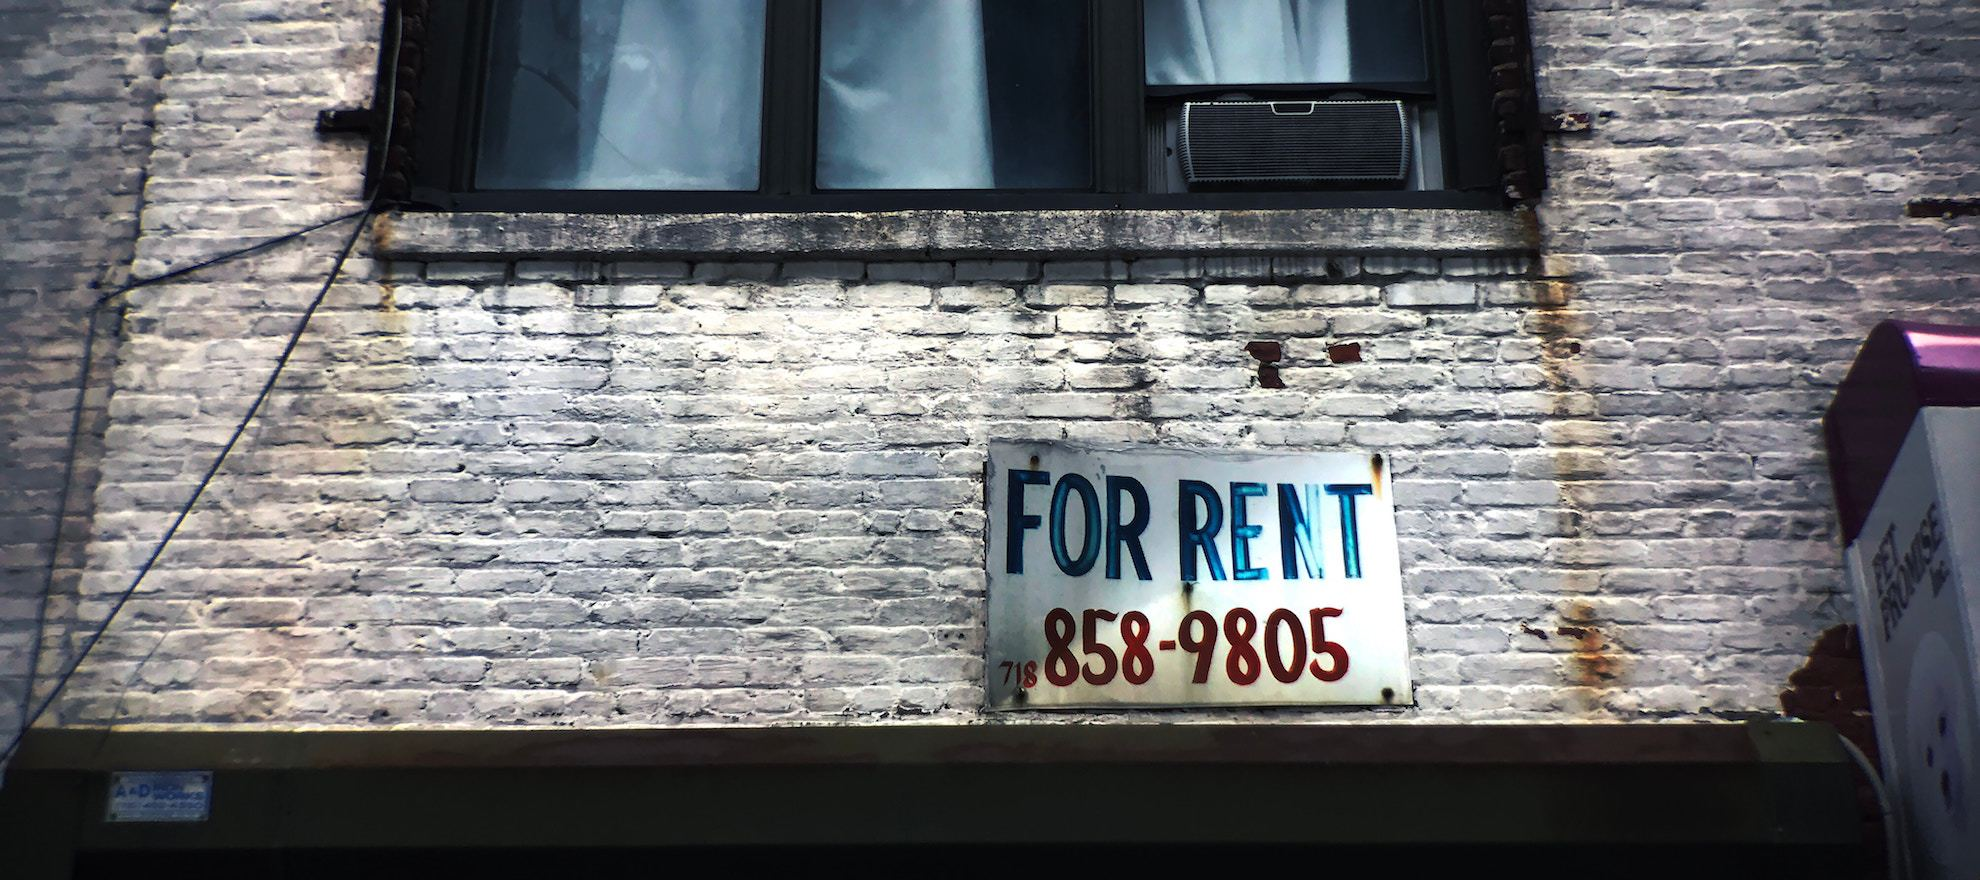 Study finds renting can make you more money than owning a home